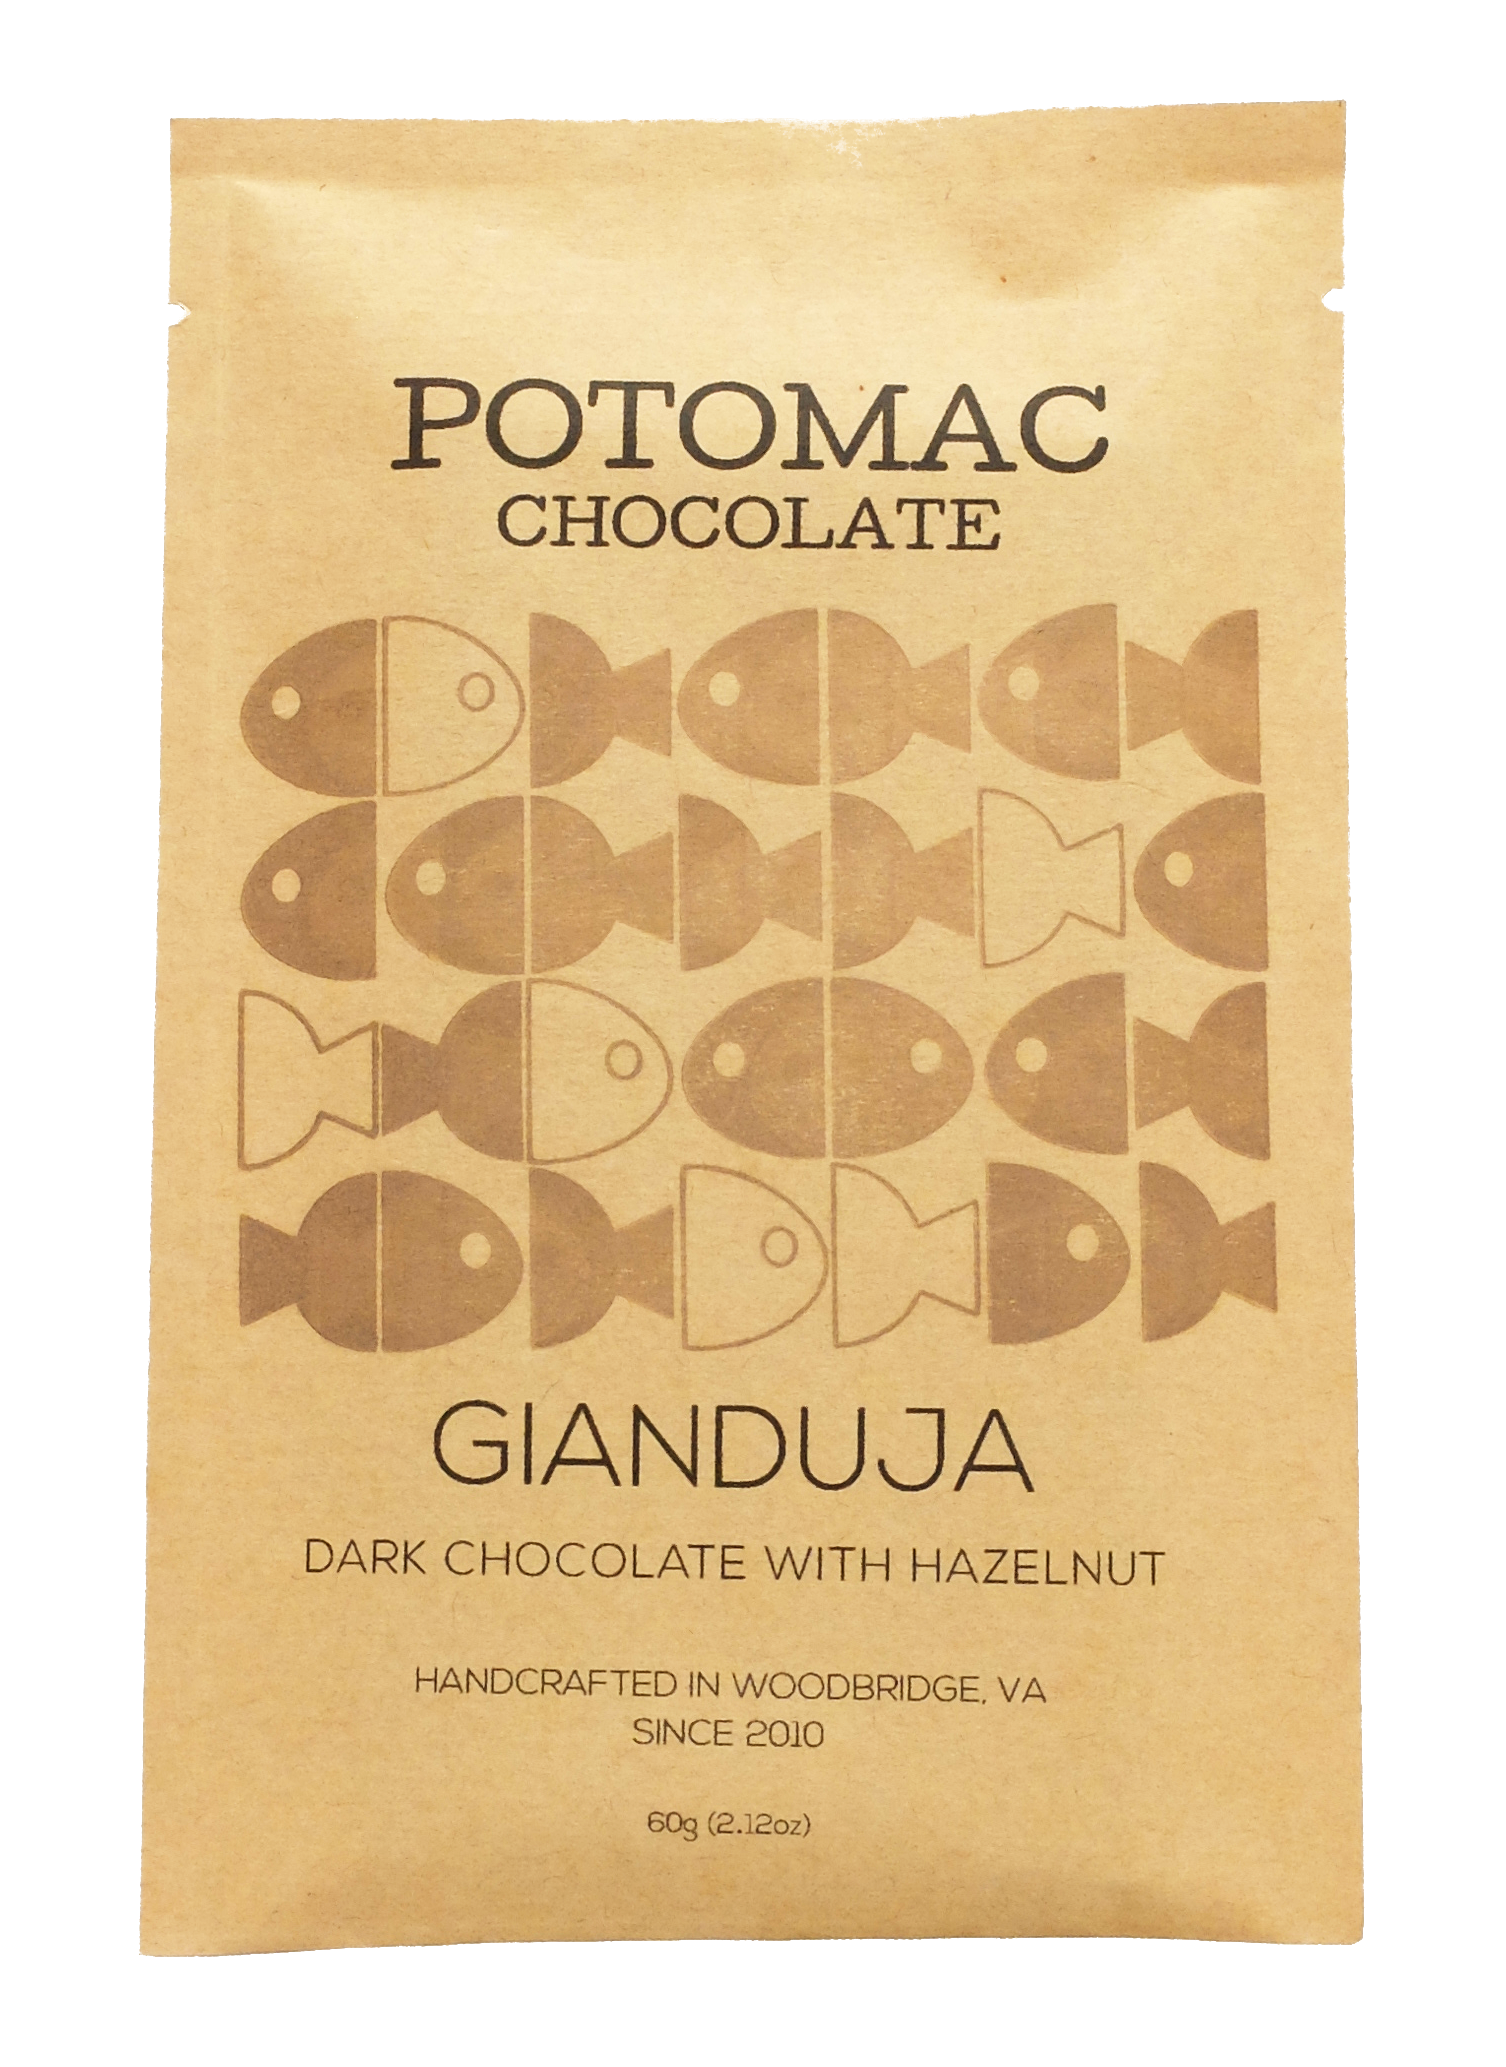 Potomac Chocolate - Gianduja Bar (Dark Chocolate with Hazelnut)